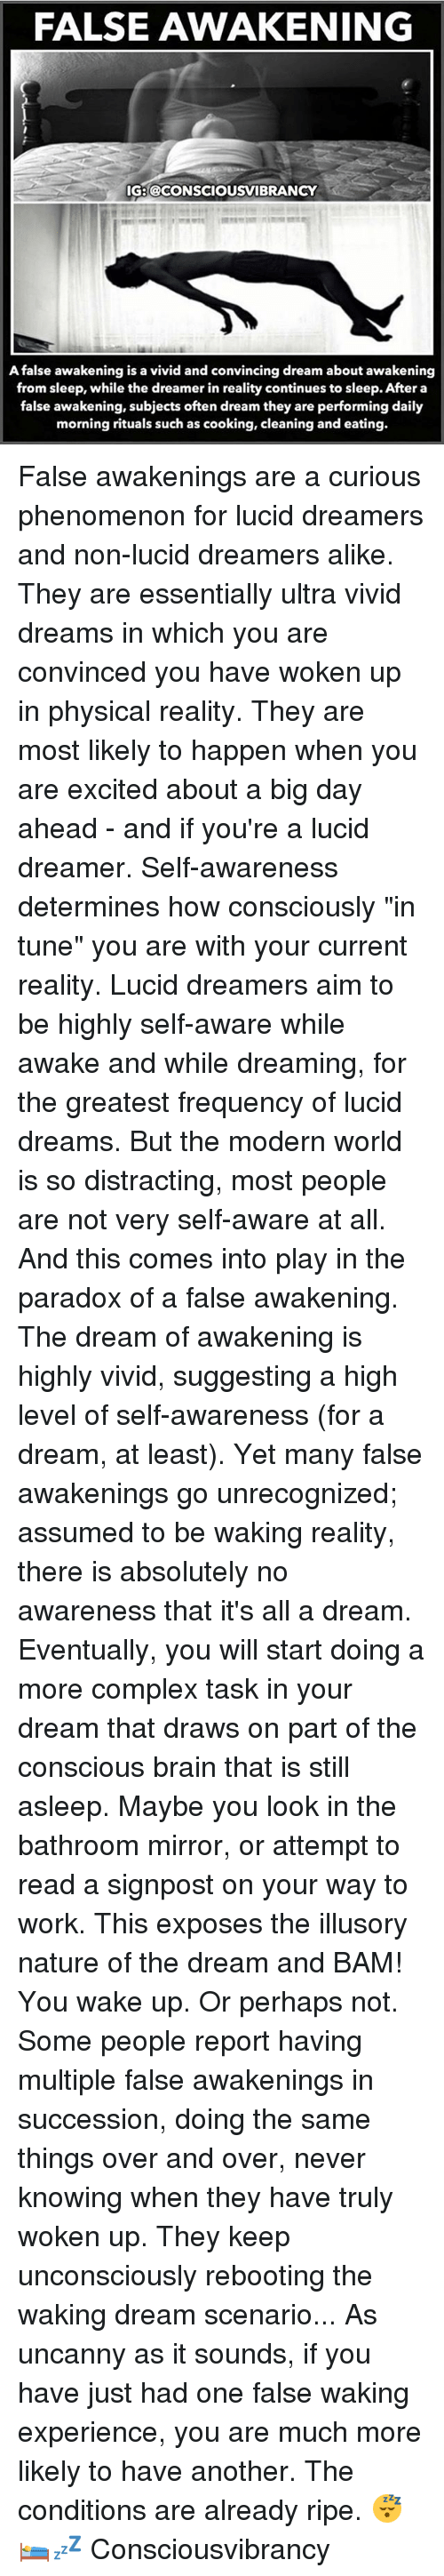 "A Dream, Complex, and Memes: FALSE AWAKENING  IG:@CONSCIOUSVIBRANCY  false awakening is a vivid and convincing dream about awakening  from sleep, while the dreamer in reality continues to sleep. After a  false awakening, subjects often dream they are performing daily  morning rituals such as cooking, cleaning and eating. False awakenings are a curious phenomenon for lucid dreamers and non-lucid dreamers alike. They are essentially ultra vivid dreams in which you are convinced you have woken up in physical reality. They are most likely to happen when you are excited about a big day ahead - and if you're a lucid dreamer. Self-awareness determines how consciously ""in tune"" you are with your current reality. Lucid dreamers aim to be highly self-aware while awake and while dreaming, for the greatest frequency of lucid dreams. But the modern world is so distracting, most people are not very self-aware at all. And this comes into play in the paradox of a false awakening. The dream of awakening is highly vivid, suggesting a high level of self-awareness (for a dream, at least). Yet many false awakenings go unrecognized; assumed to be waking reality, there is absolutely no awareness that it's all a dream. Eventually, you will start doing a more complex task in your dream that draws on part of the conscious brain that is still asleep. Maybe you look in the bathroom mirror, or attempt to read a signpost on your way to work. This exposes the illusory nature of the dream and BAM! You wake up. Or perhaps not. Some people report having multiple false awakenings in succession, doing the same things over and over, never knowing when they have truly woken up. They keep unconsciously rebooting the waking dream scenario... As uncanny as it sounds, if you have just had one false waking experience, you are much more likely to have another. The conditions are already ripe. 😴🛌💤 Consciousvibrancy"